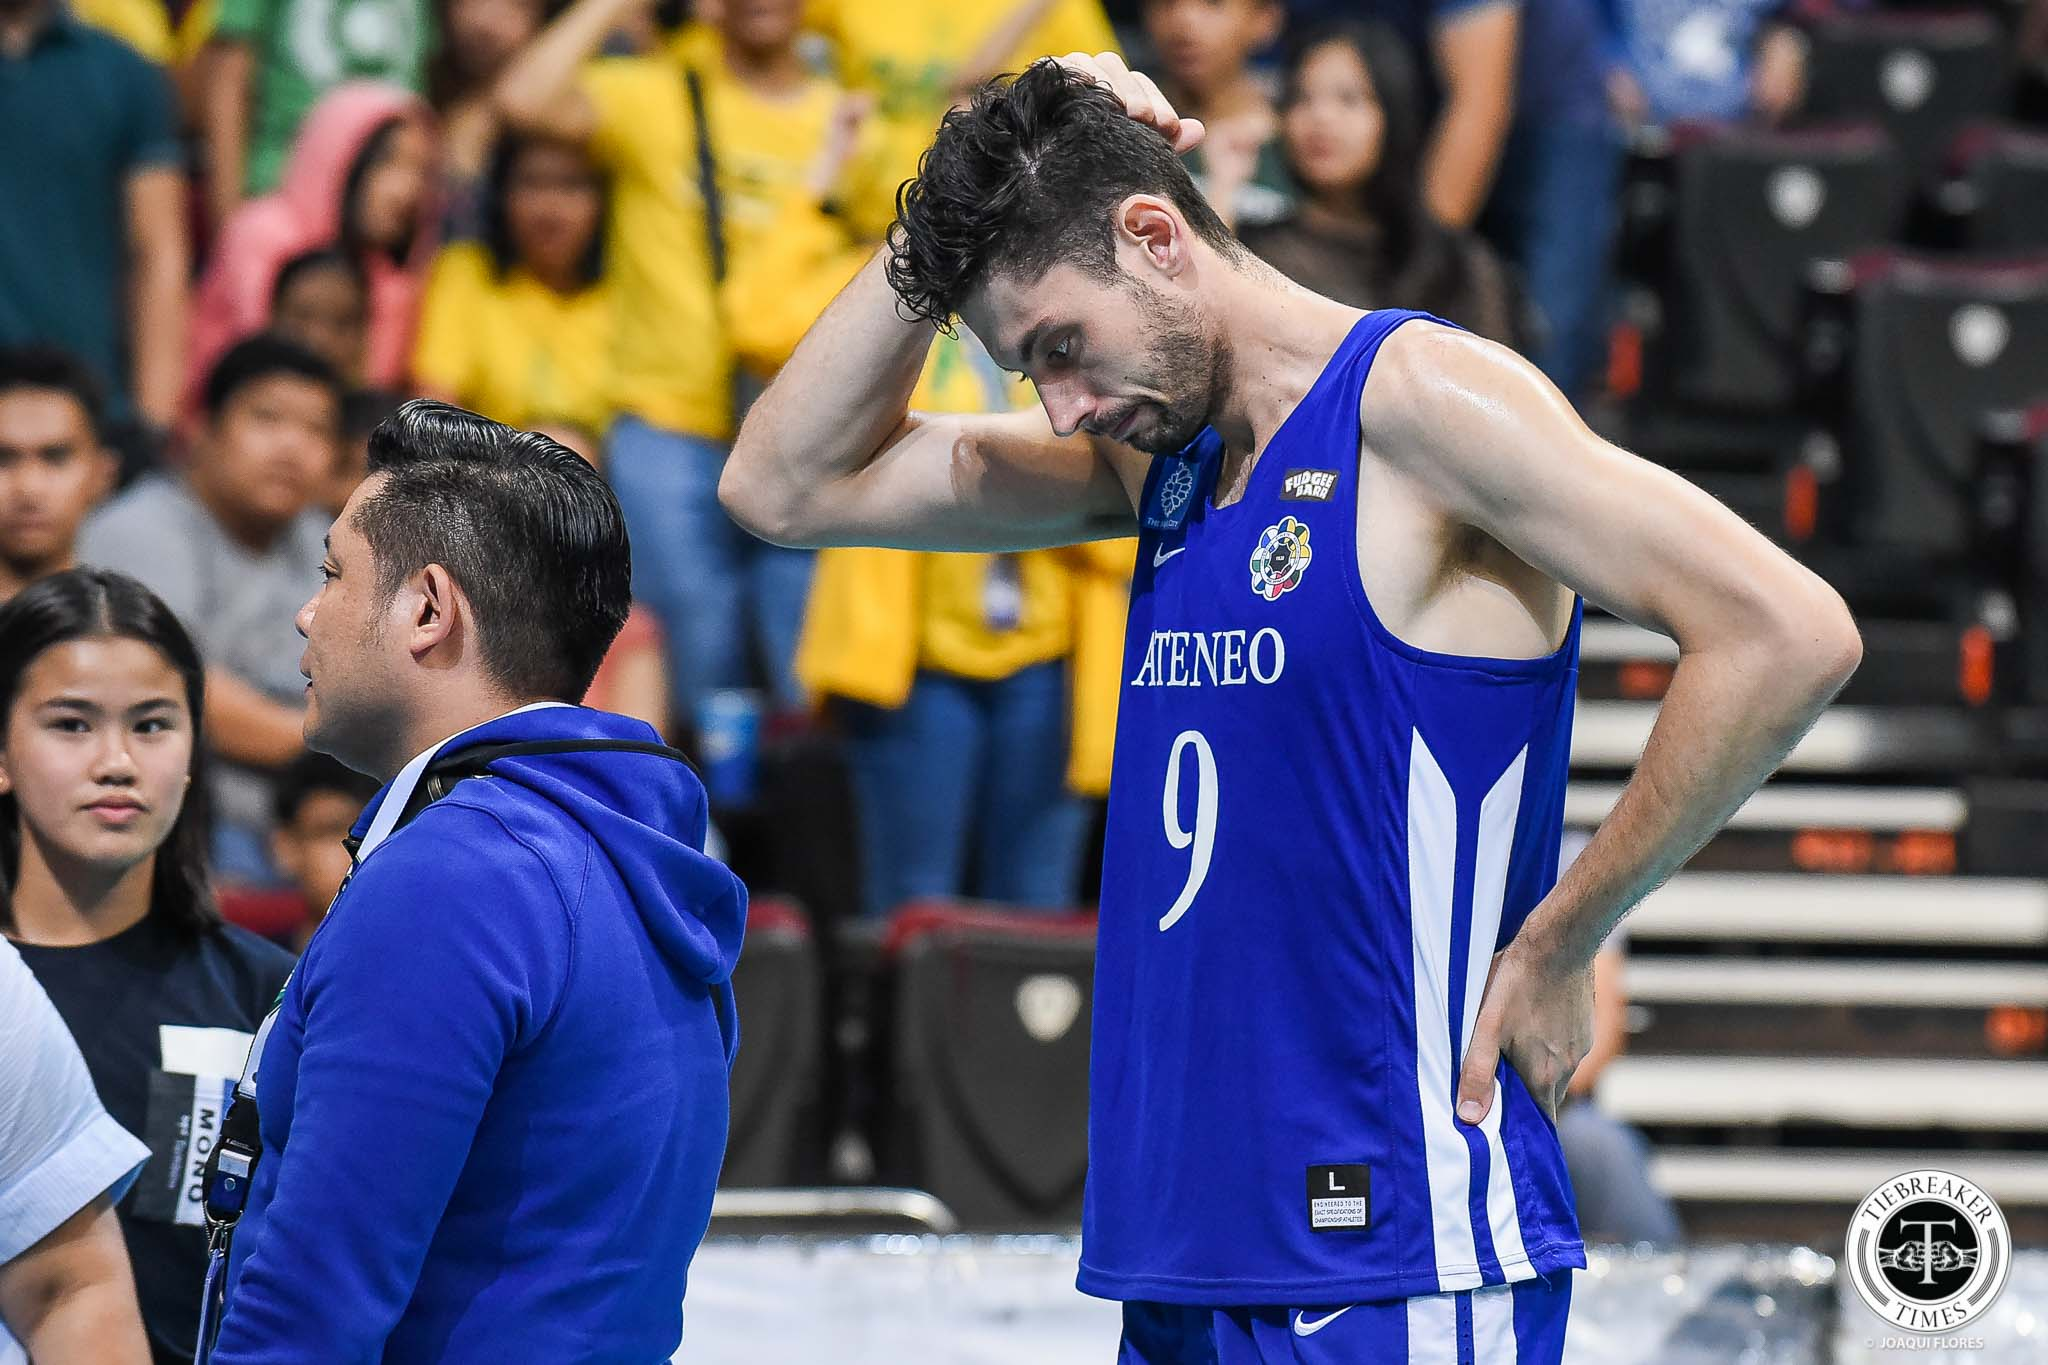 the best attitude d2cf5 ee628 Tony Koyfman has no regrets giving Ateneo one last fight ...